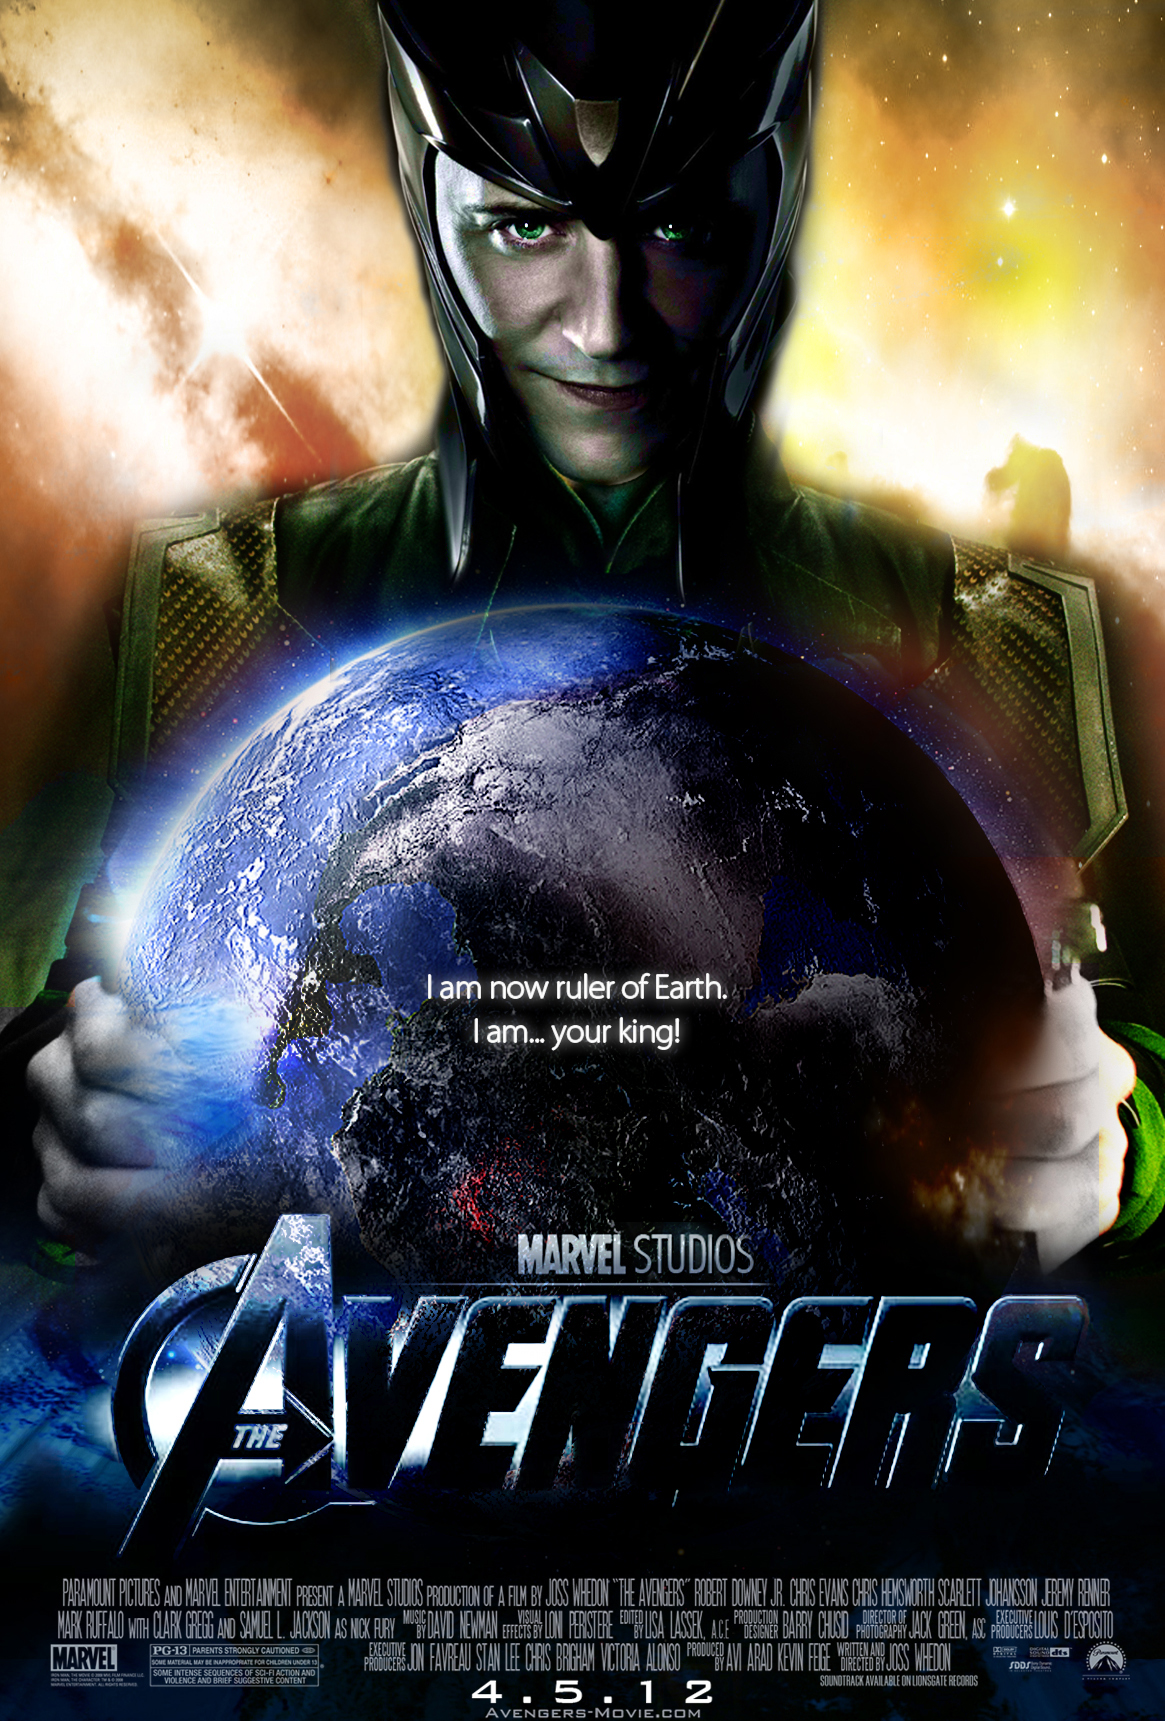 The Avengers Movie Poster Loki by Alex4everdn on DeviantArt